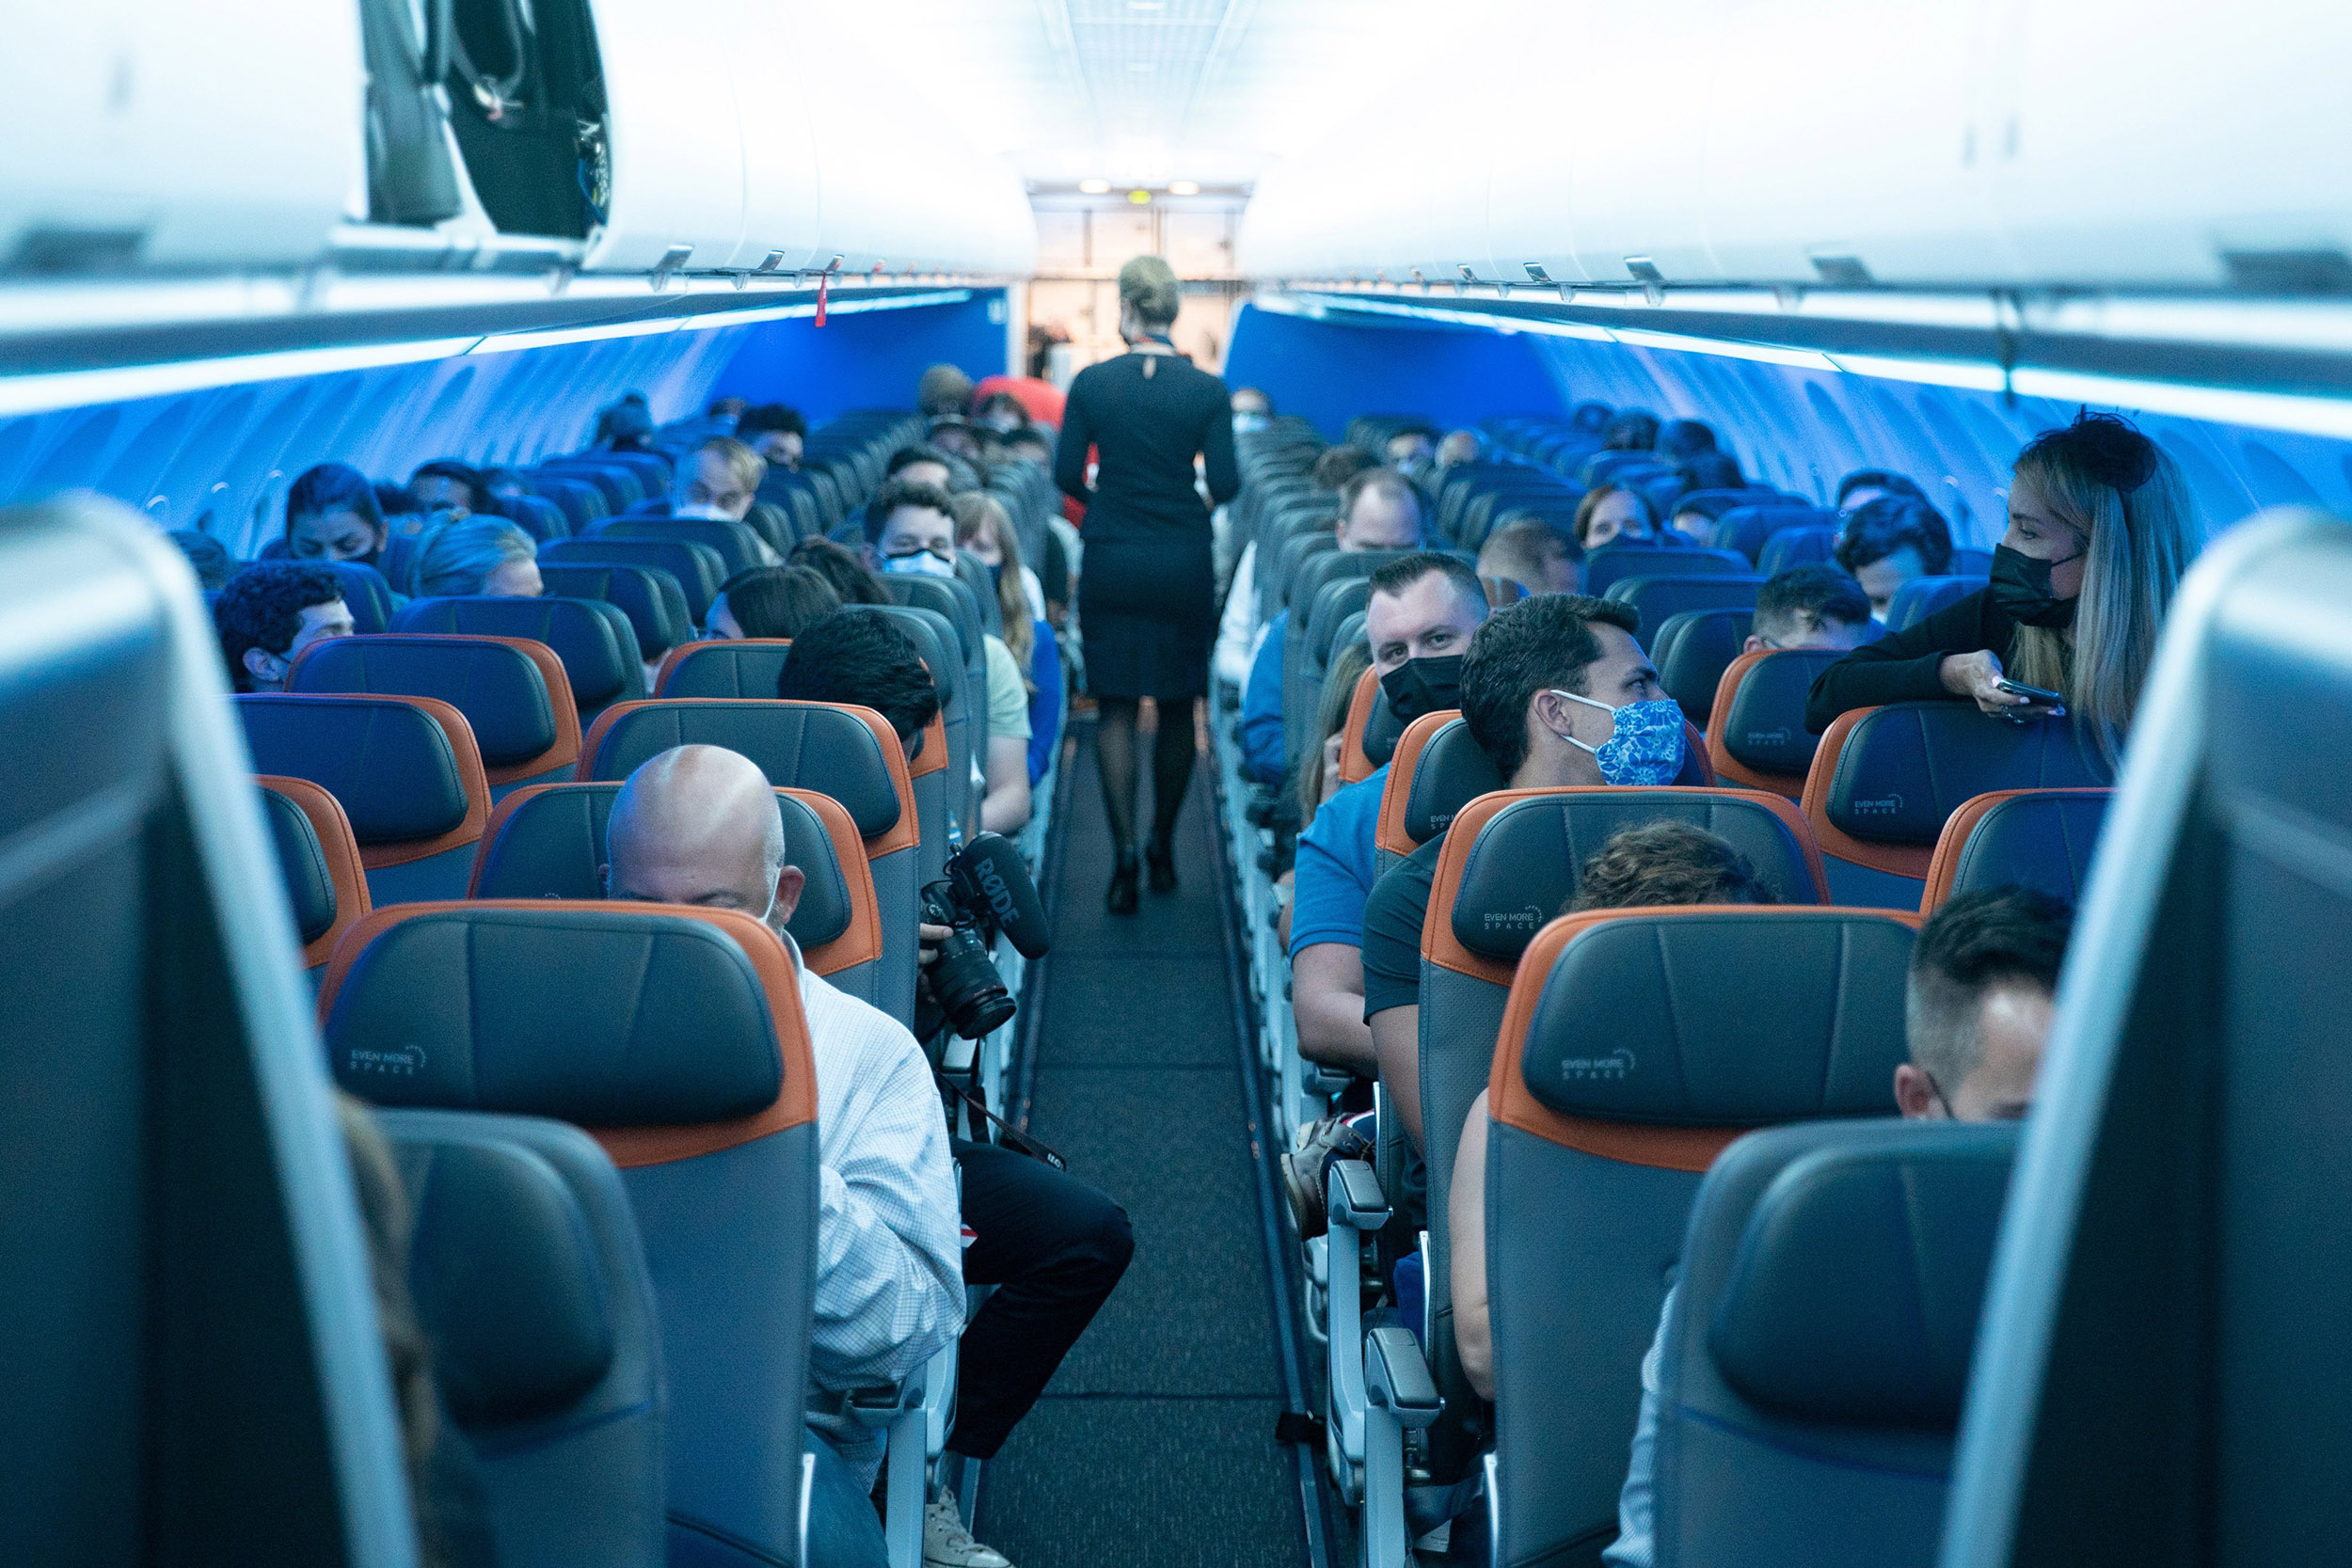 Proposed fines for unruly passengers top $1 million, FAA says